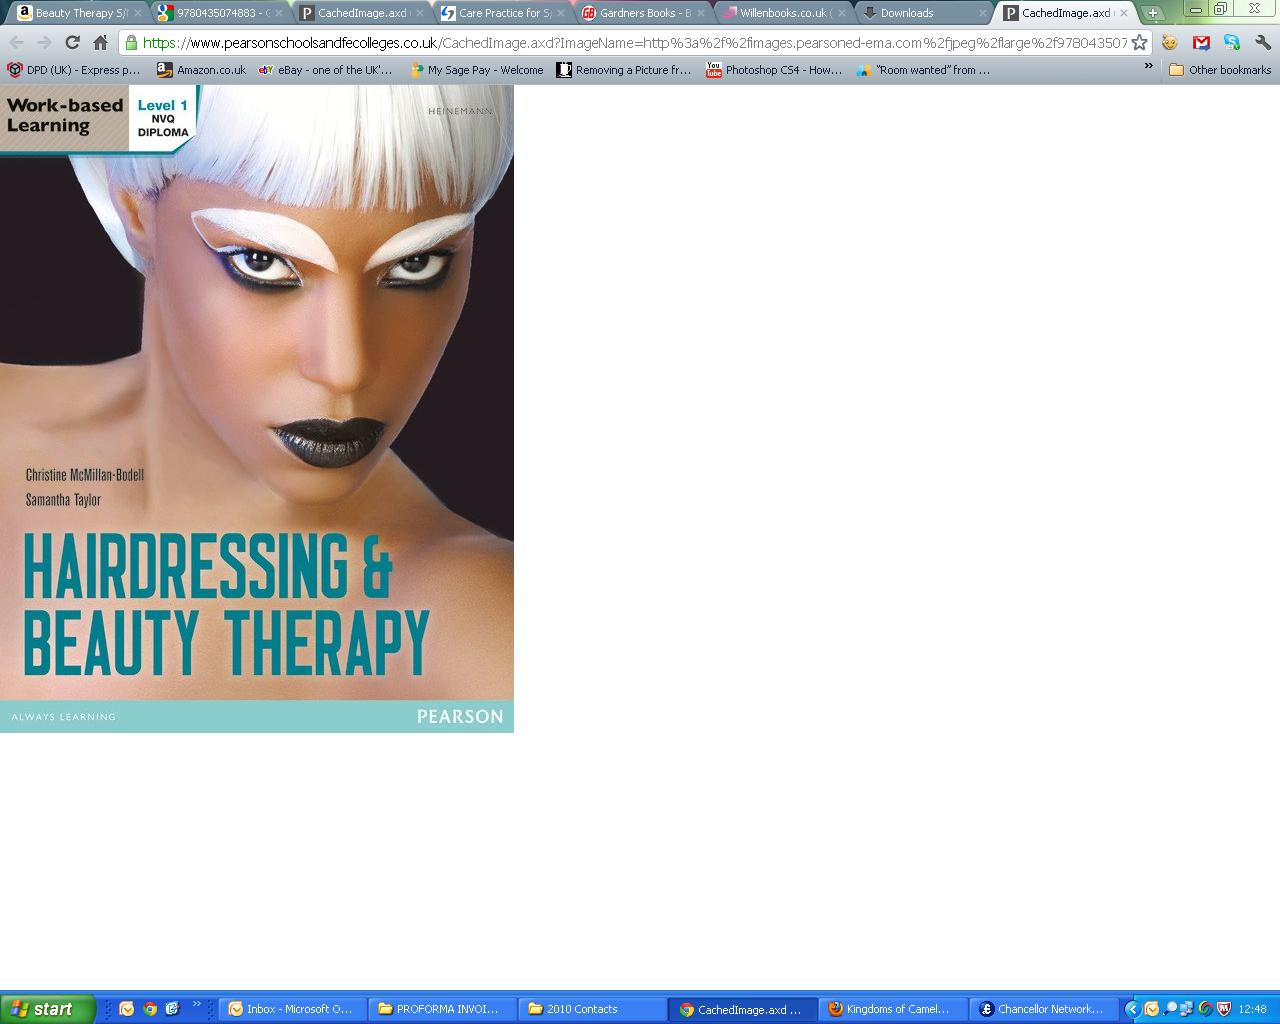 Level 1 NVQ Diploma Hairdressing and Beauty Therapy by Taylor, McMillan Bodell